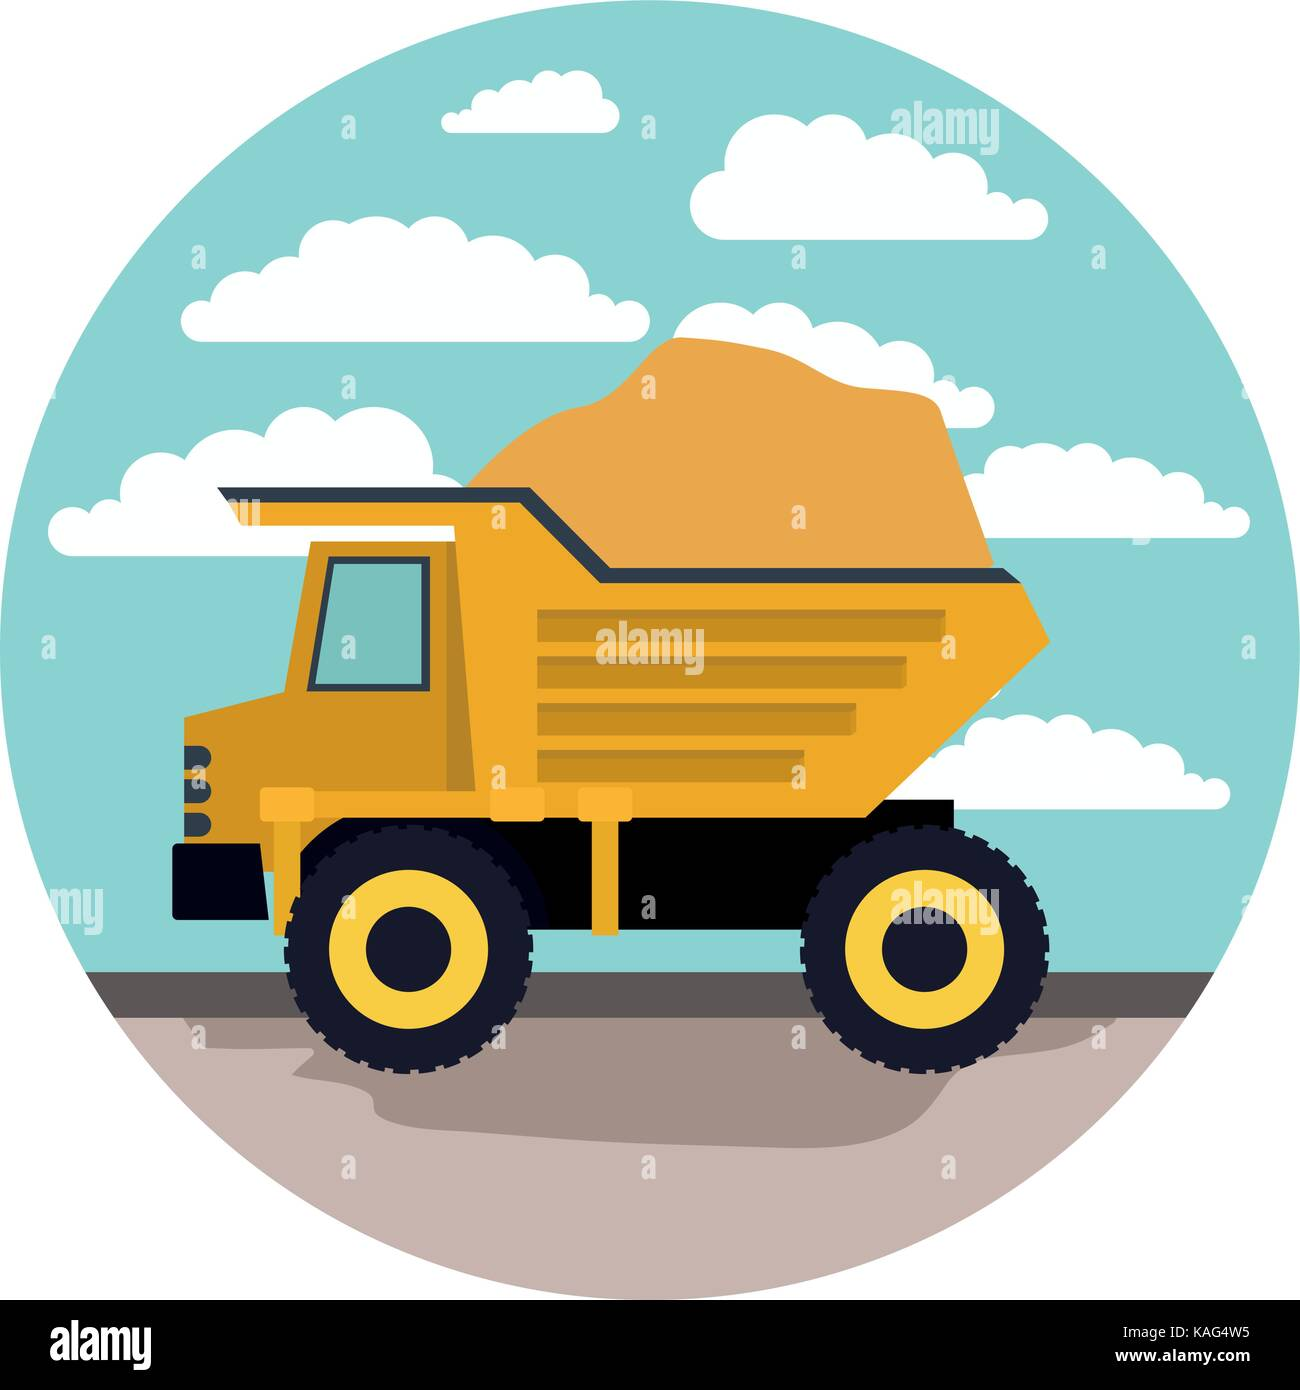 dump truck in circular frame with cloud landscape on colorful silhouette - Stock Vector